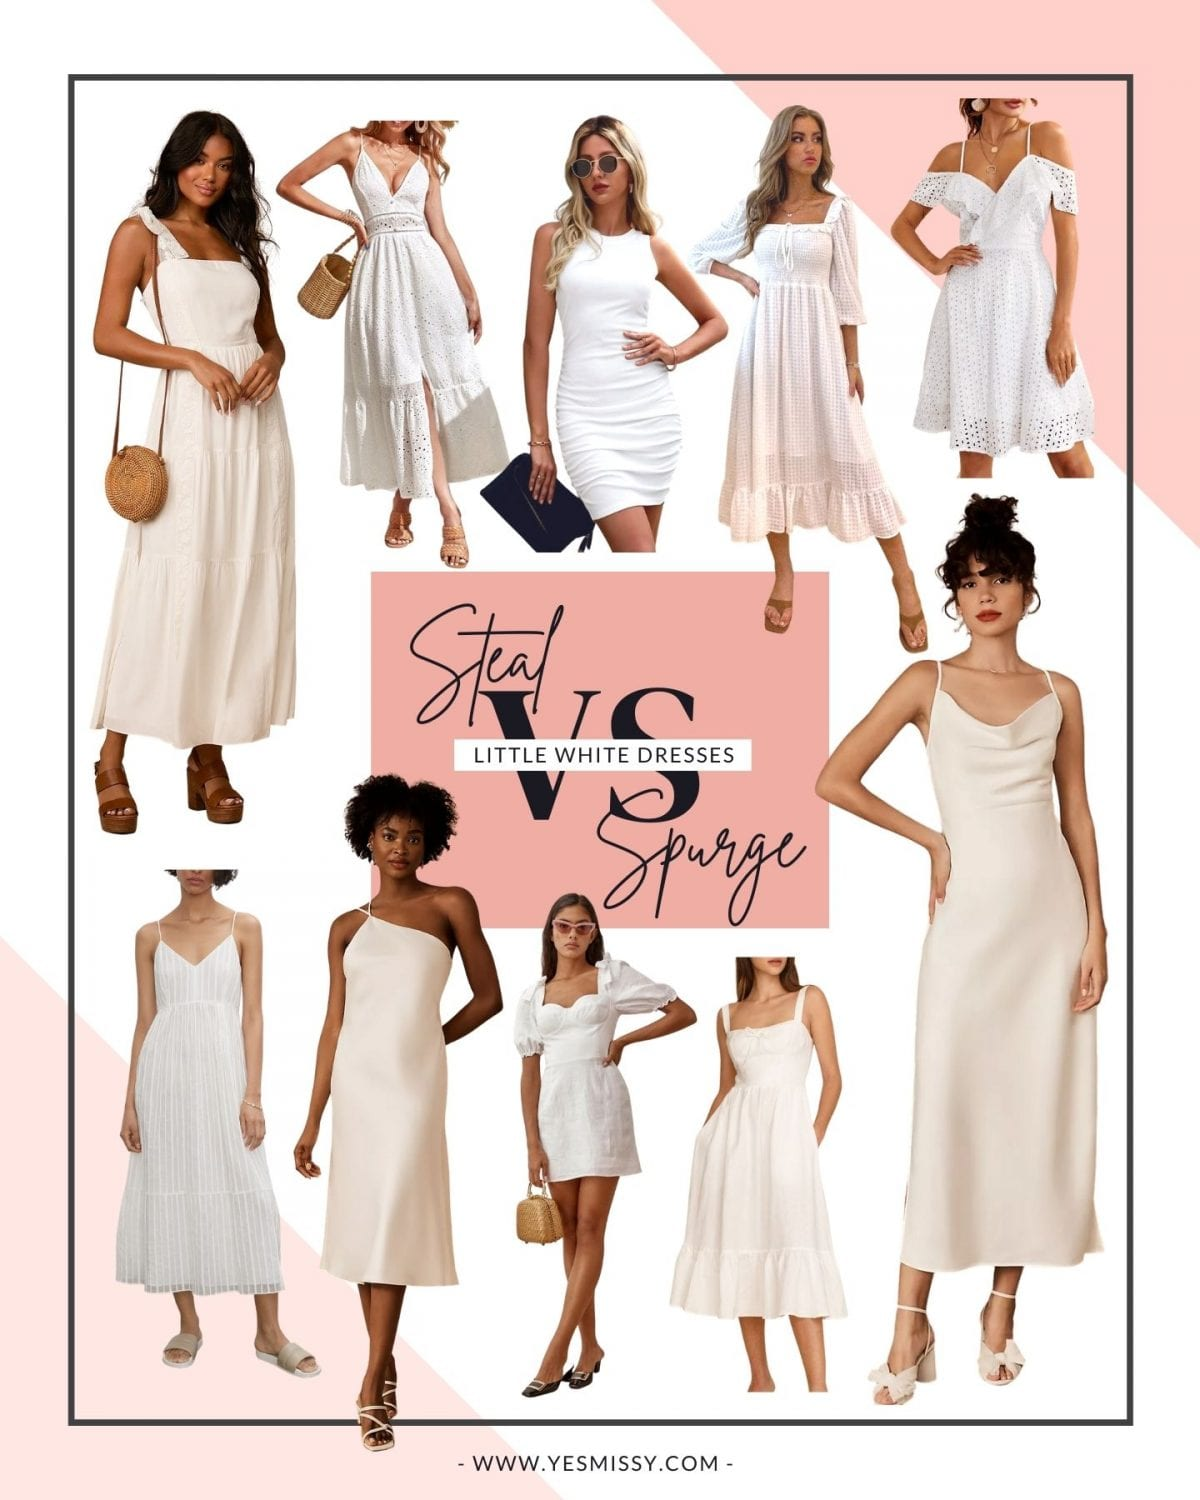 Little white dresses for summer! Splurge vs Steal? Whether you're looking for a deal or a designer dress, here are some of the best places to shop for them. Check it out on yesmissy.com